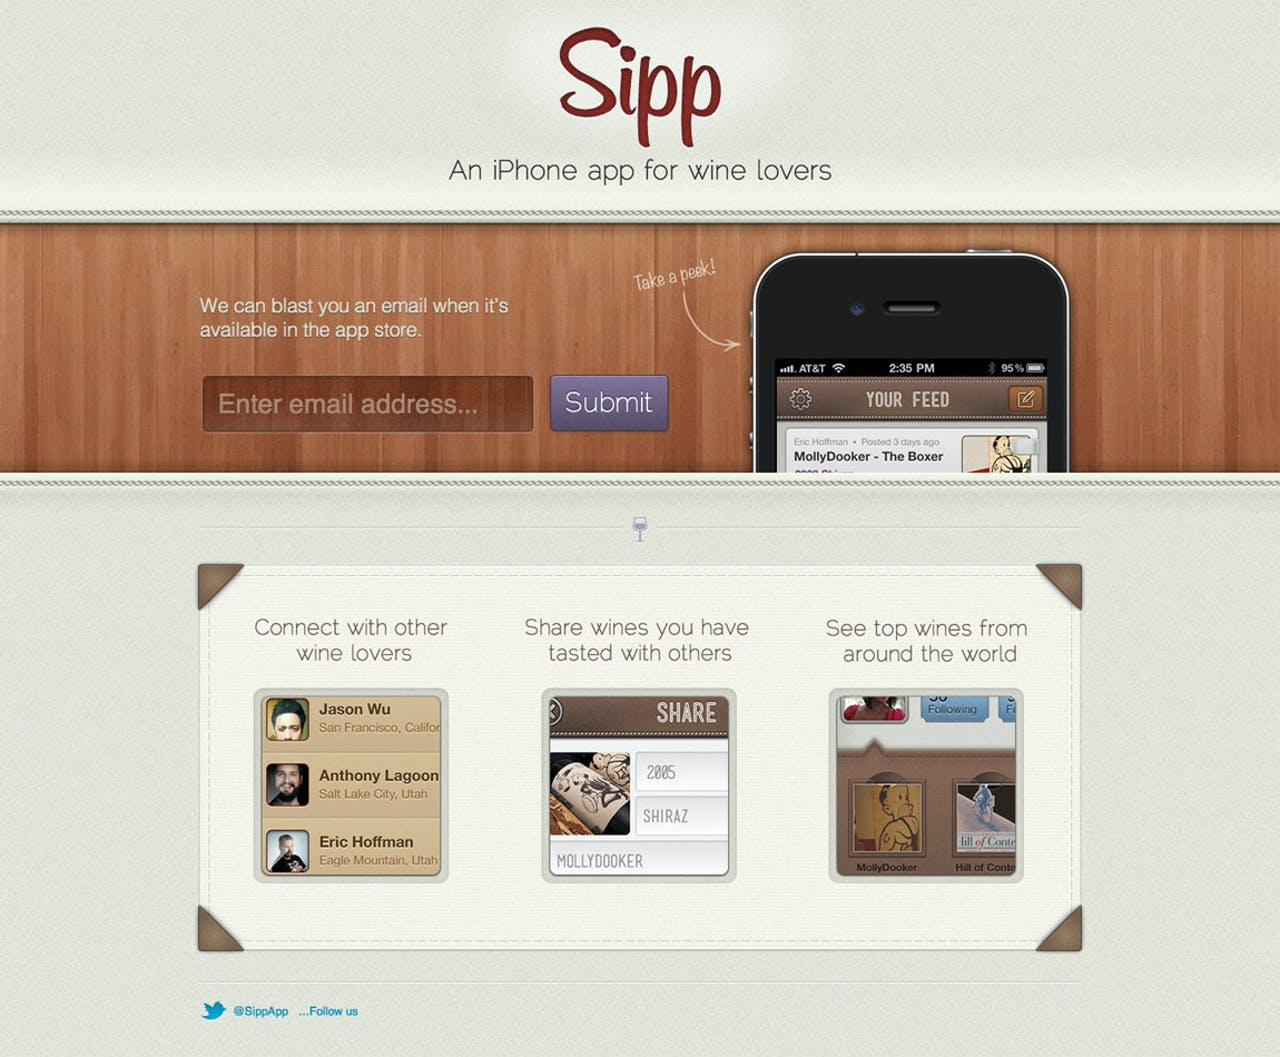 Sipp Website Screenshot